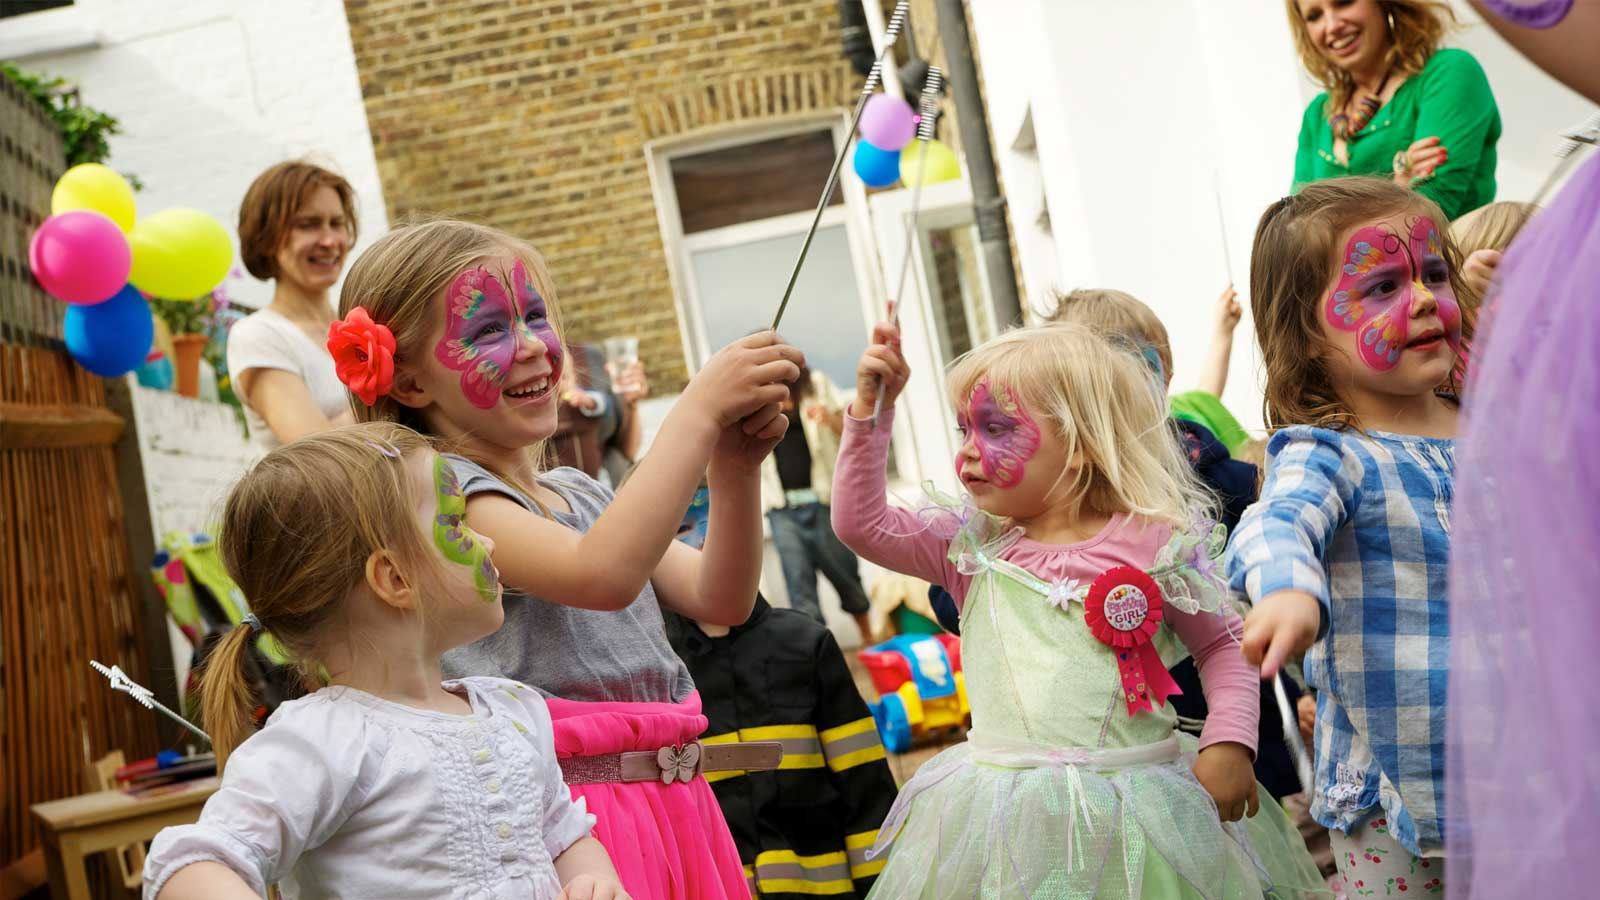 Drama Music Dance Classes Birthday Parties With Lucy Sparkles - Childrens birthday party ideas in london